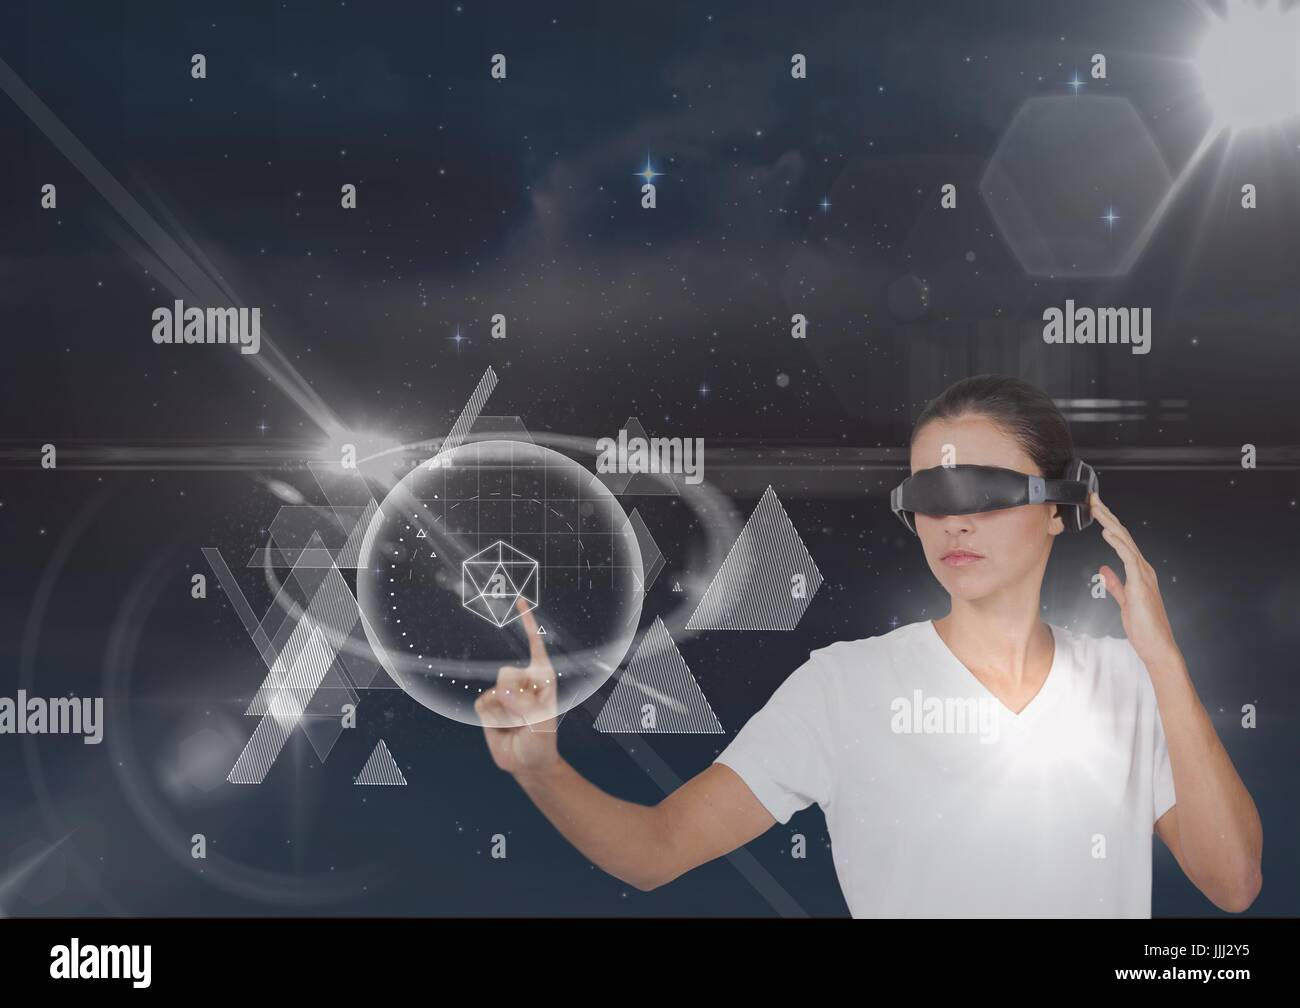 Woman in VR headset touching interface against black sky with stars and flares - Stock Image